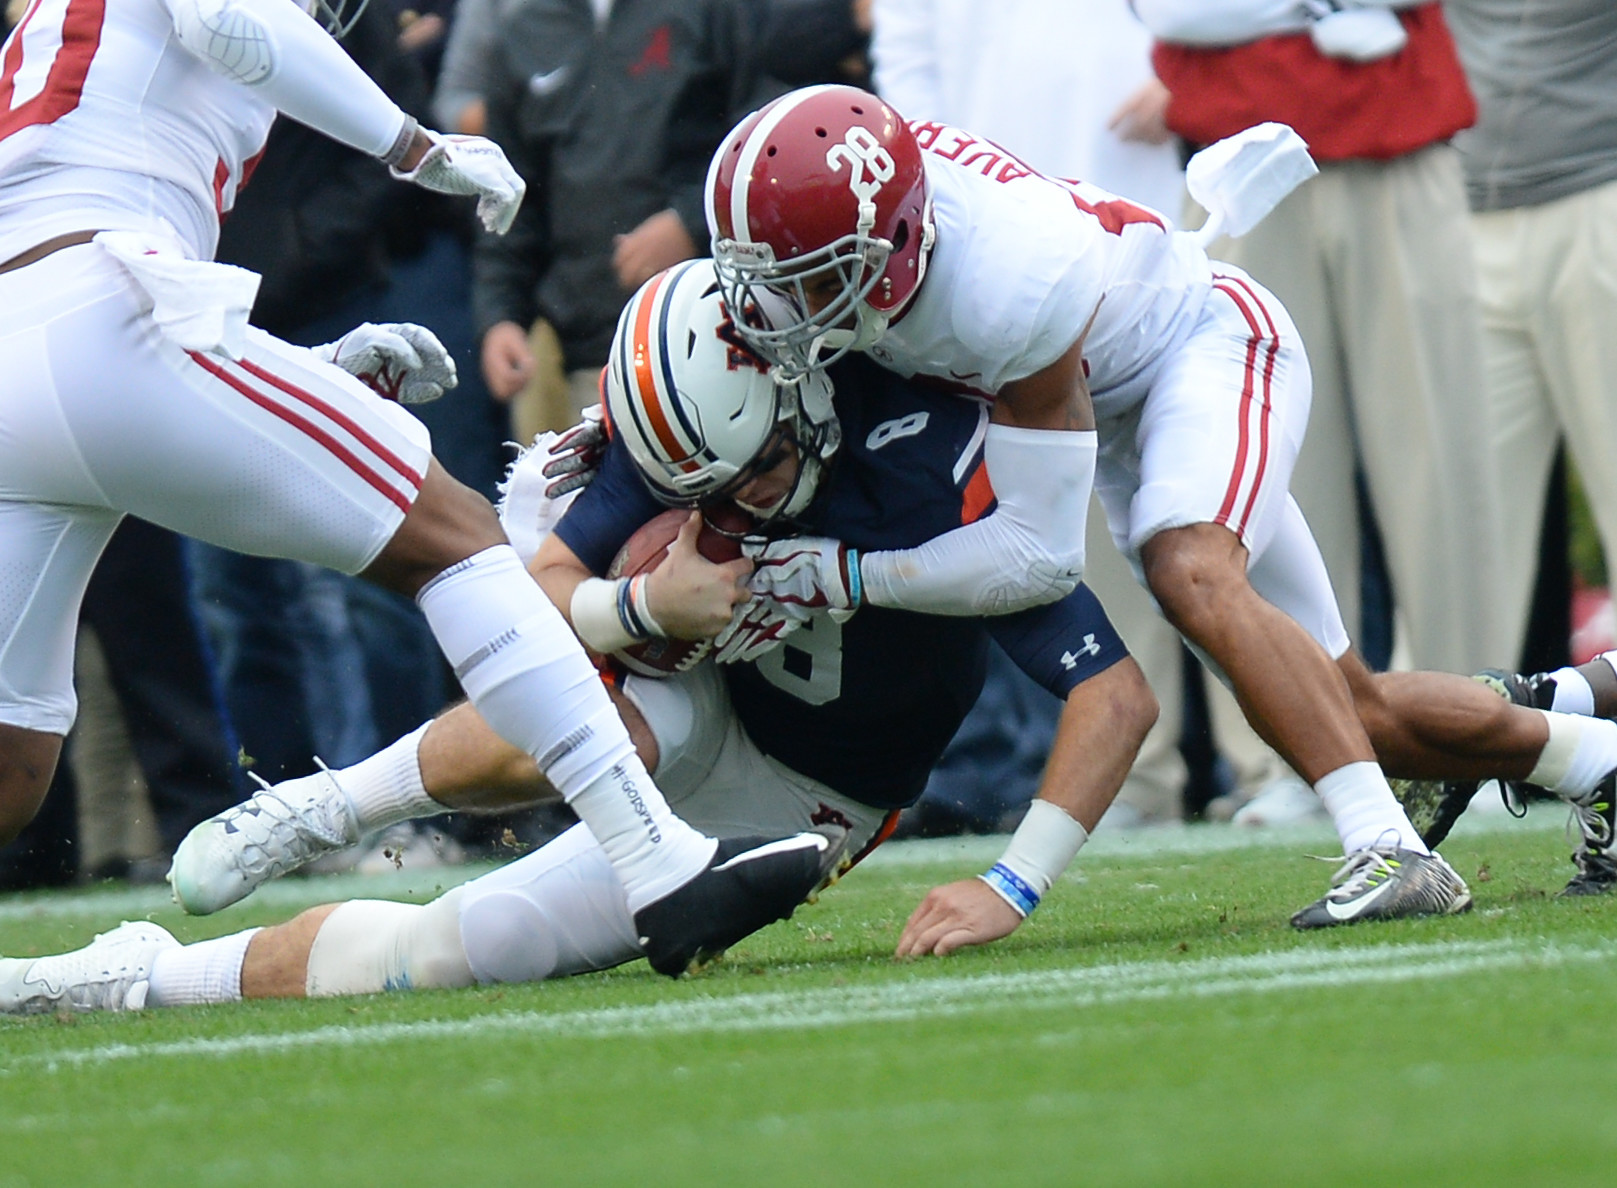 Auburn Tigers quarterback Jarrett Stidham (8) is tackled by Alabama Crimson Tide defensive back Anthony Averett (28) during the first half of Saturday's game, at Jordan-Hare Stadium.